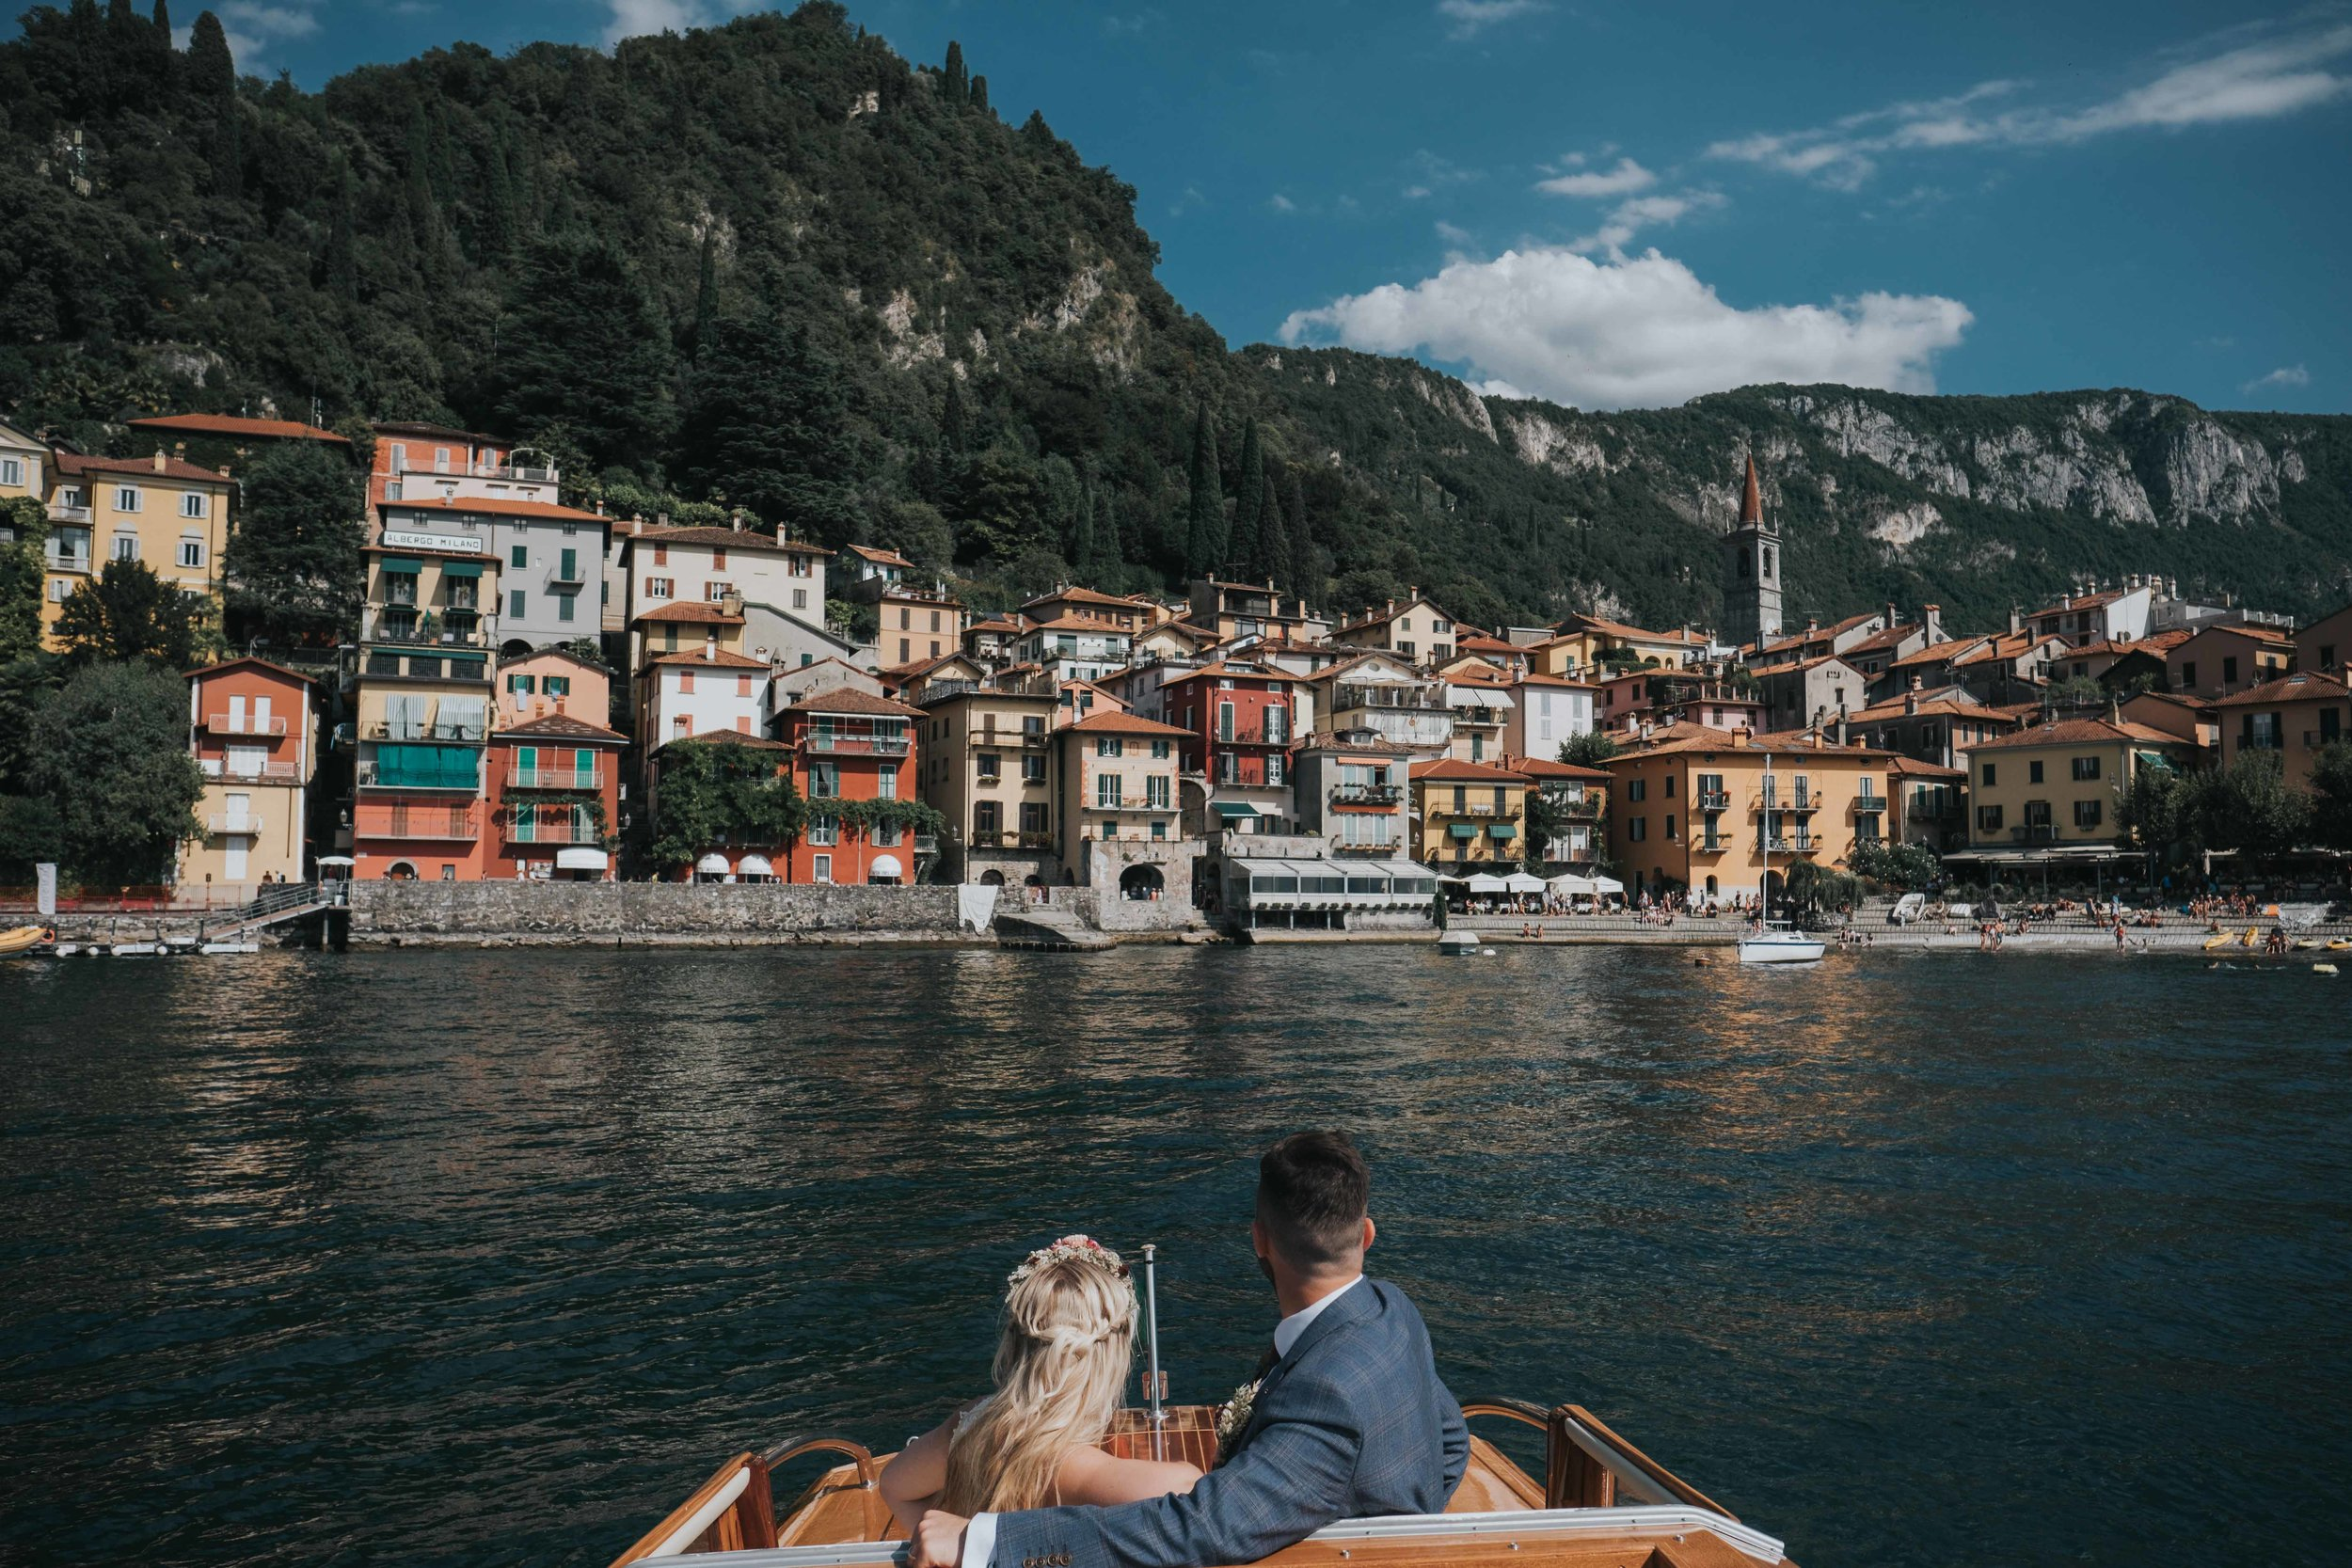 Laco Como Italy destination wedding photographer cheshire north west england documentry photography (74 of 117).jpg